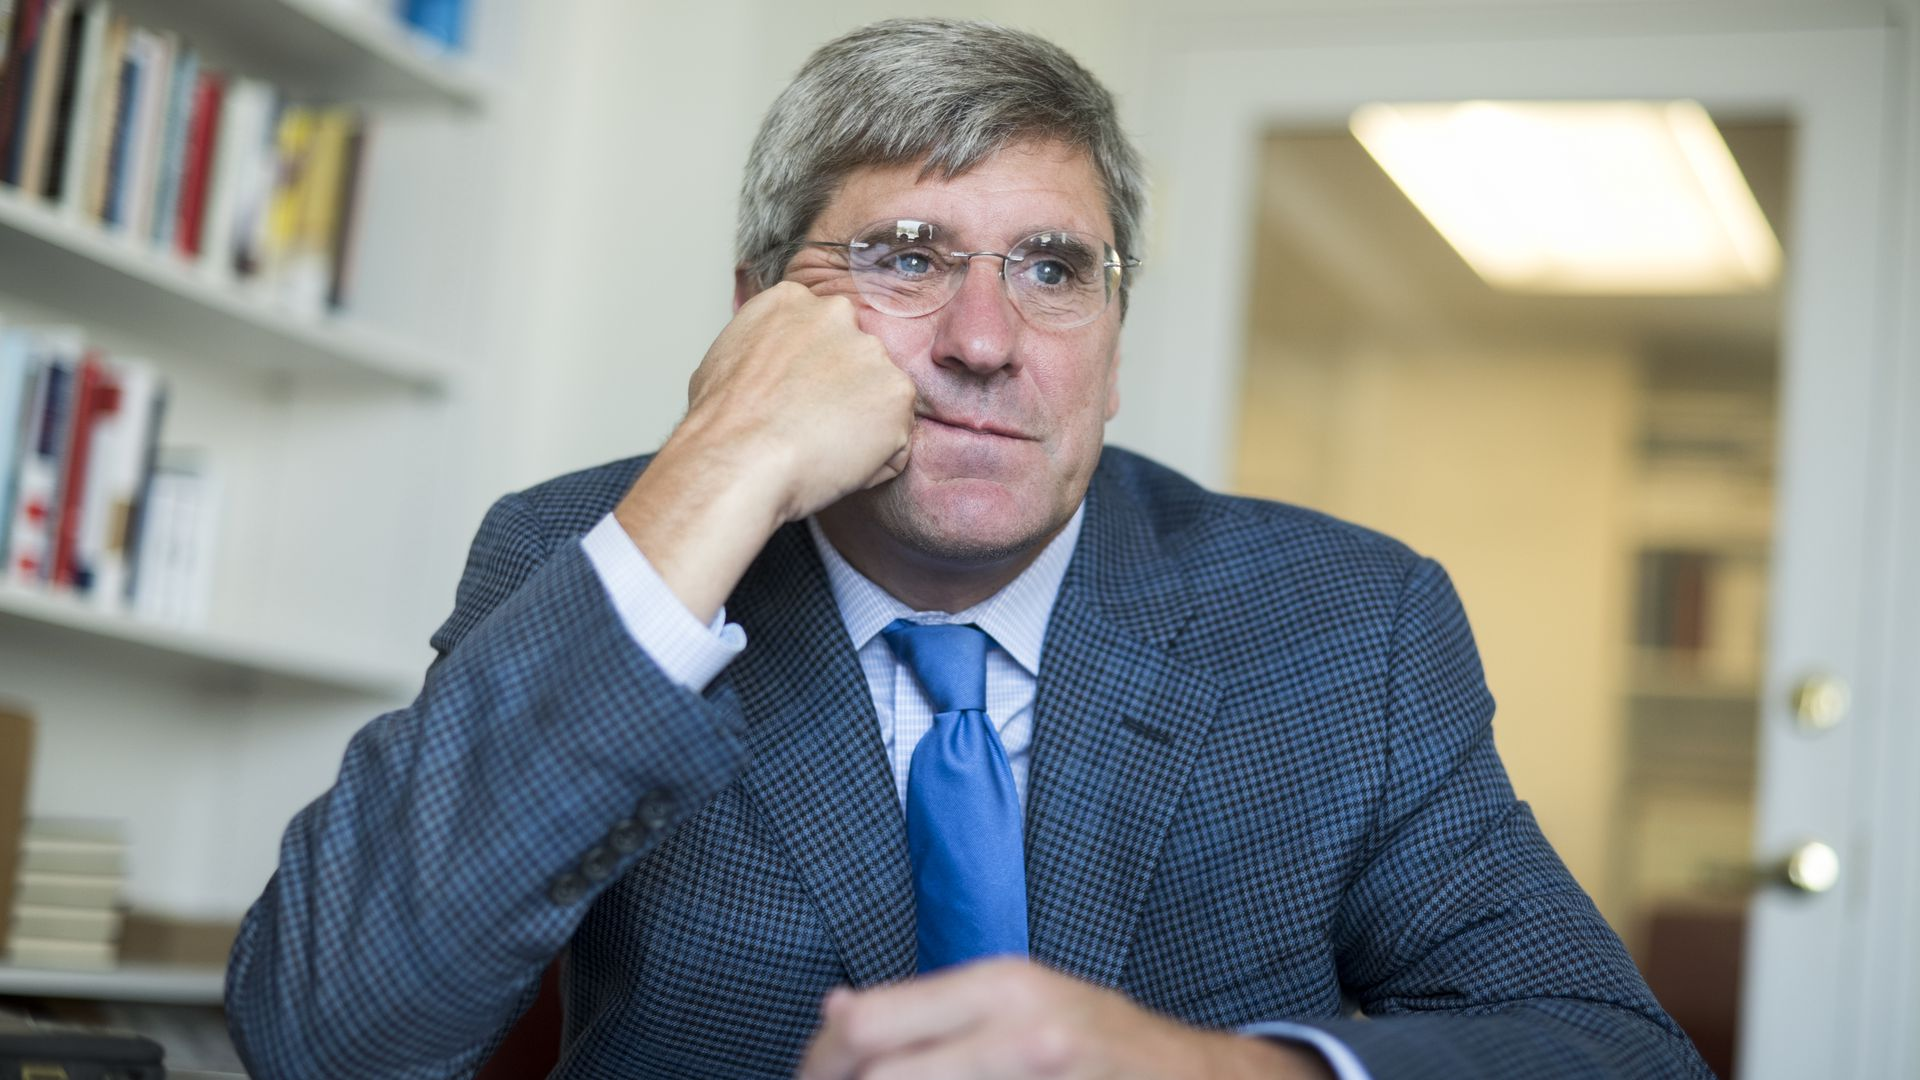 In this image, Stephen Moore sits at a desk and leans his face against one hand. He's wearing glasses.